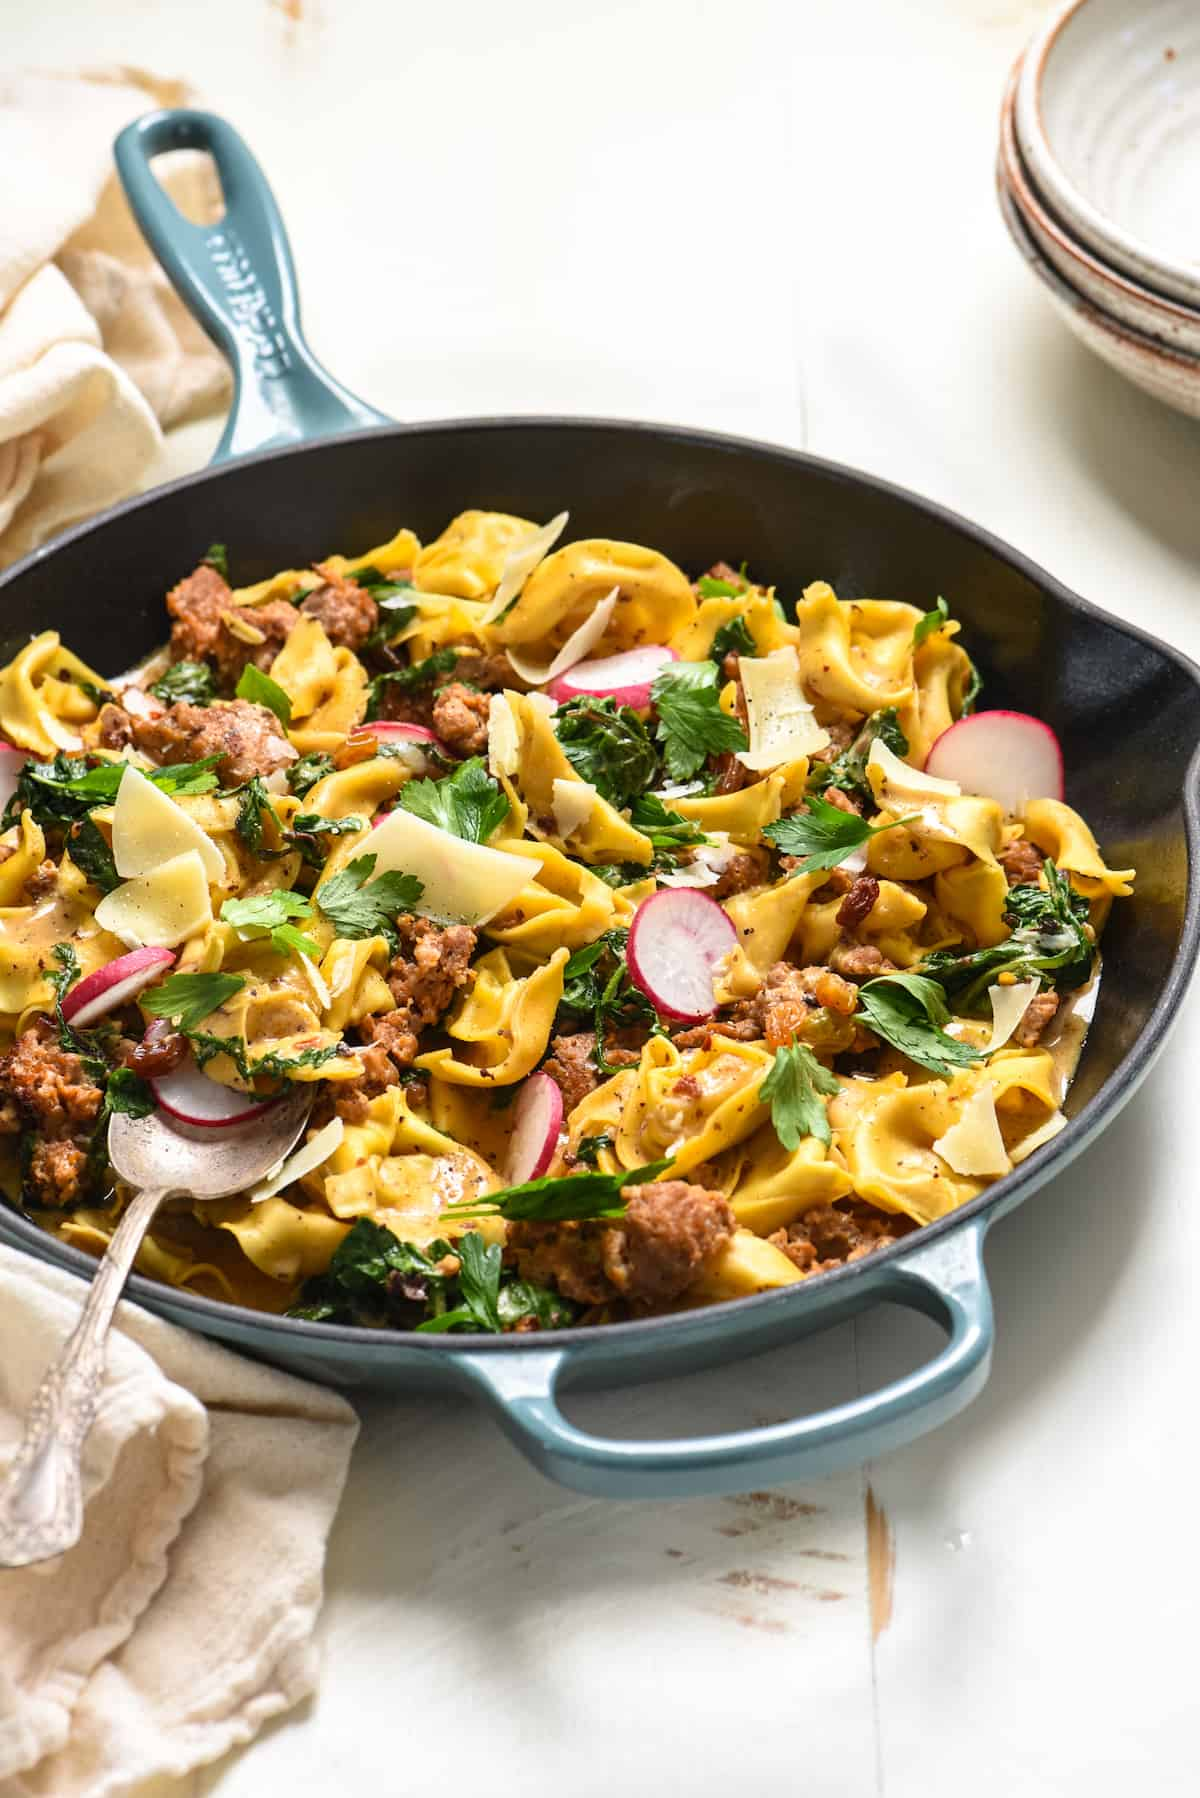 This One Pan Sausage & Tortellini can be on the table in minimal time with minimal dishes. It's a perfect balance of creamy, spicy and sweet, and there's tons of hidden veggies, too!  | foxeslovelemons.com